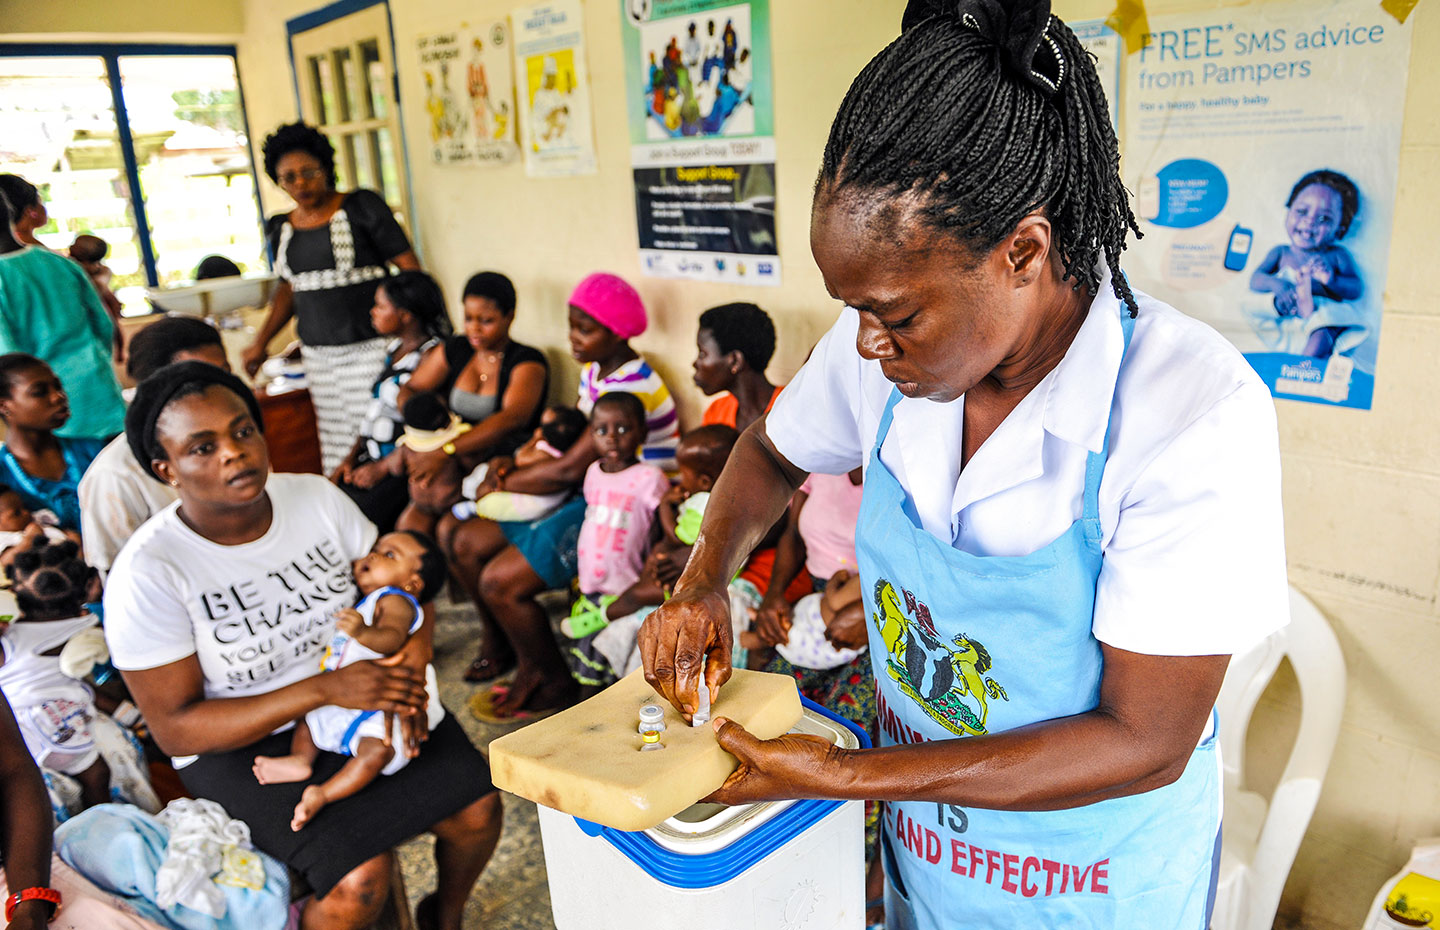 The introduction of the pentavalent vaccine in Nigeria. Credit: Gavi/2013/Adrian Brooks